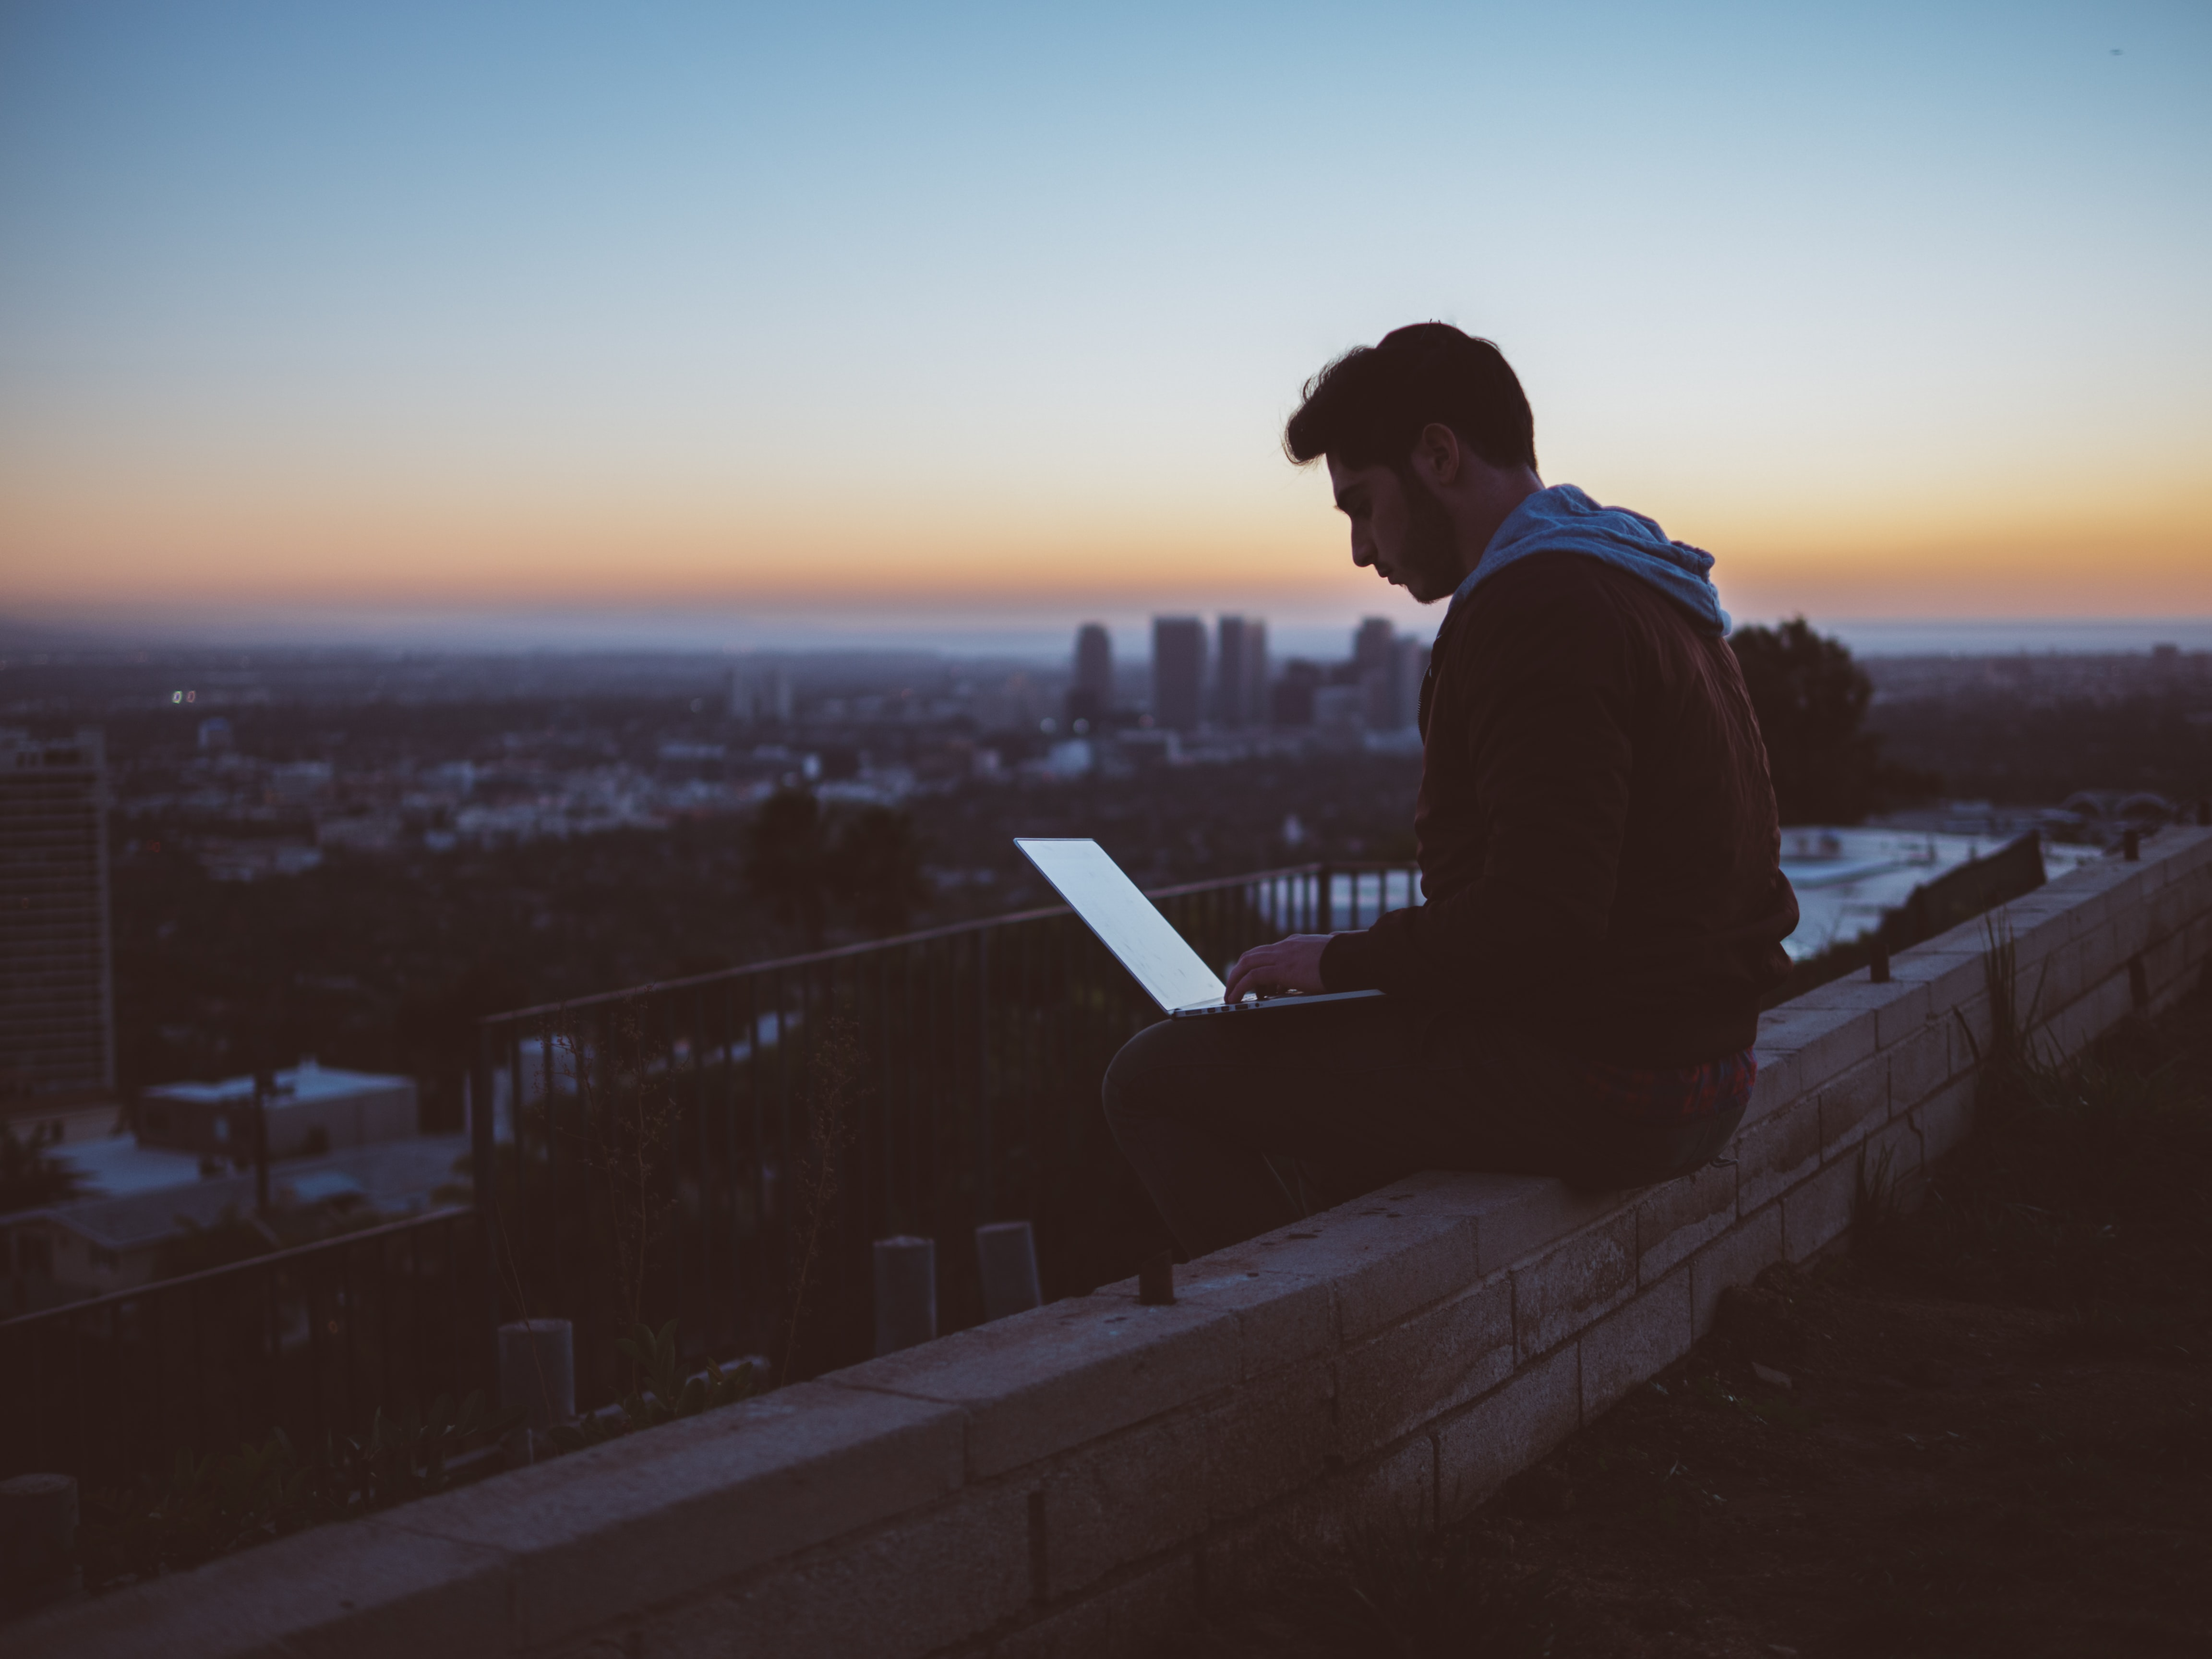 A young man working on a laptop while seated on a ledge in a city during sunset